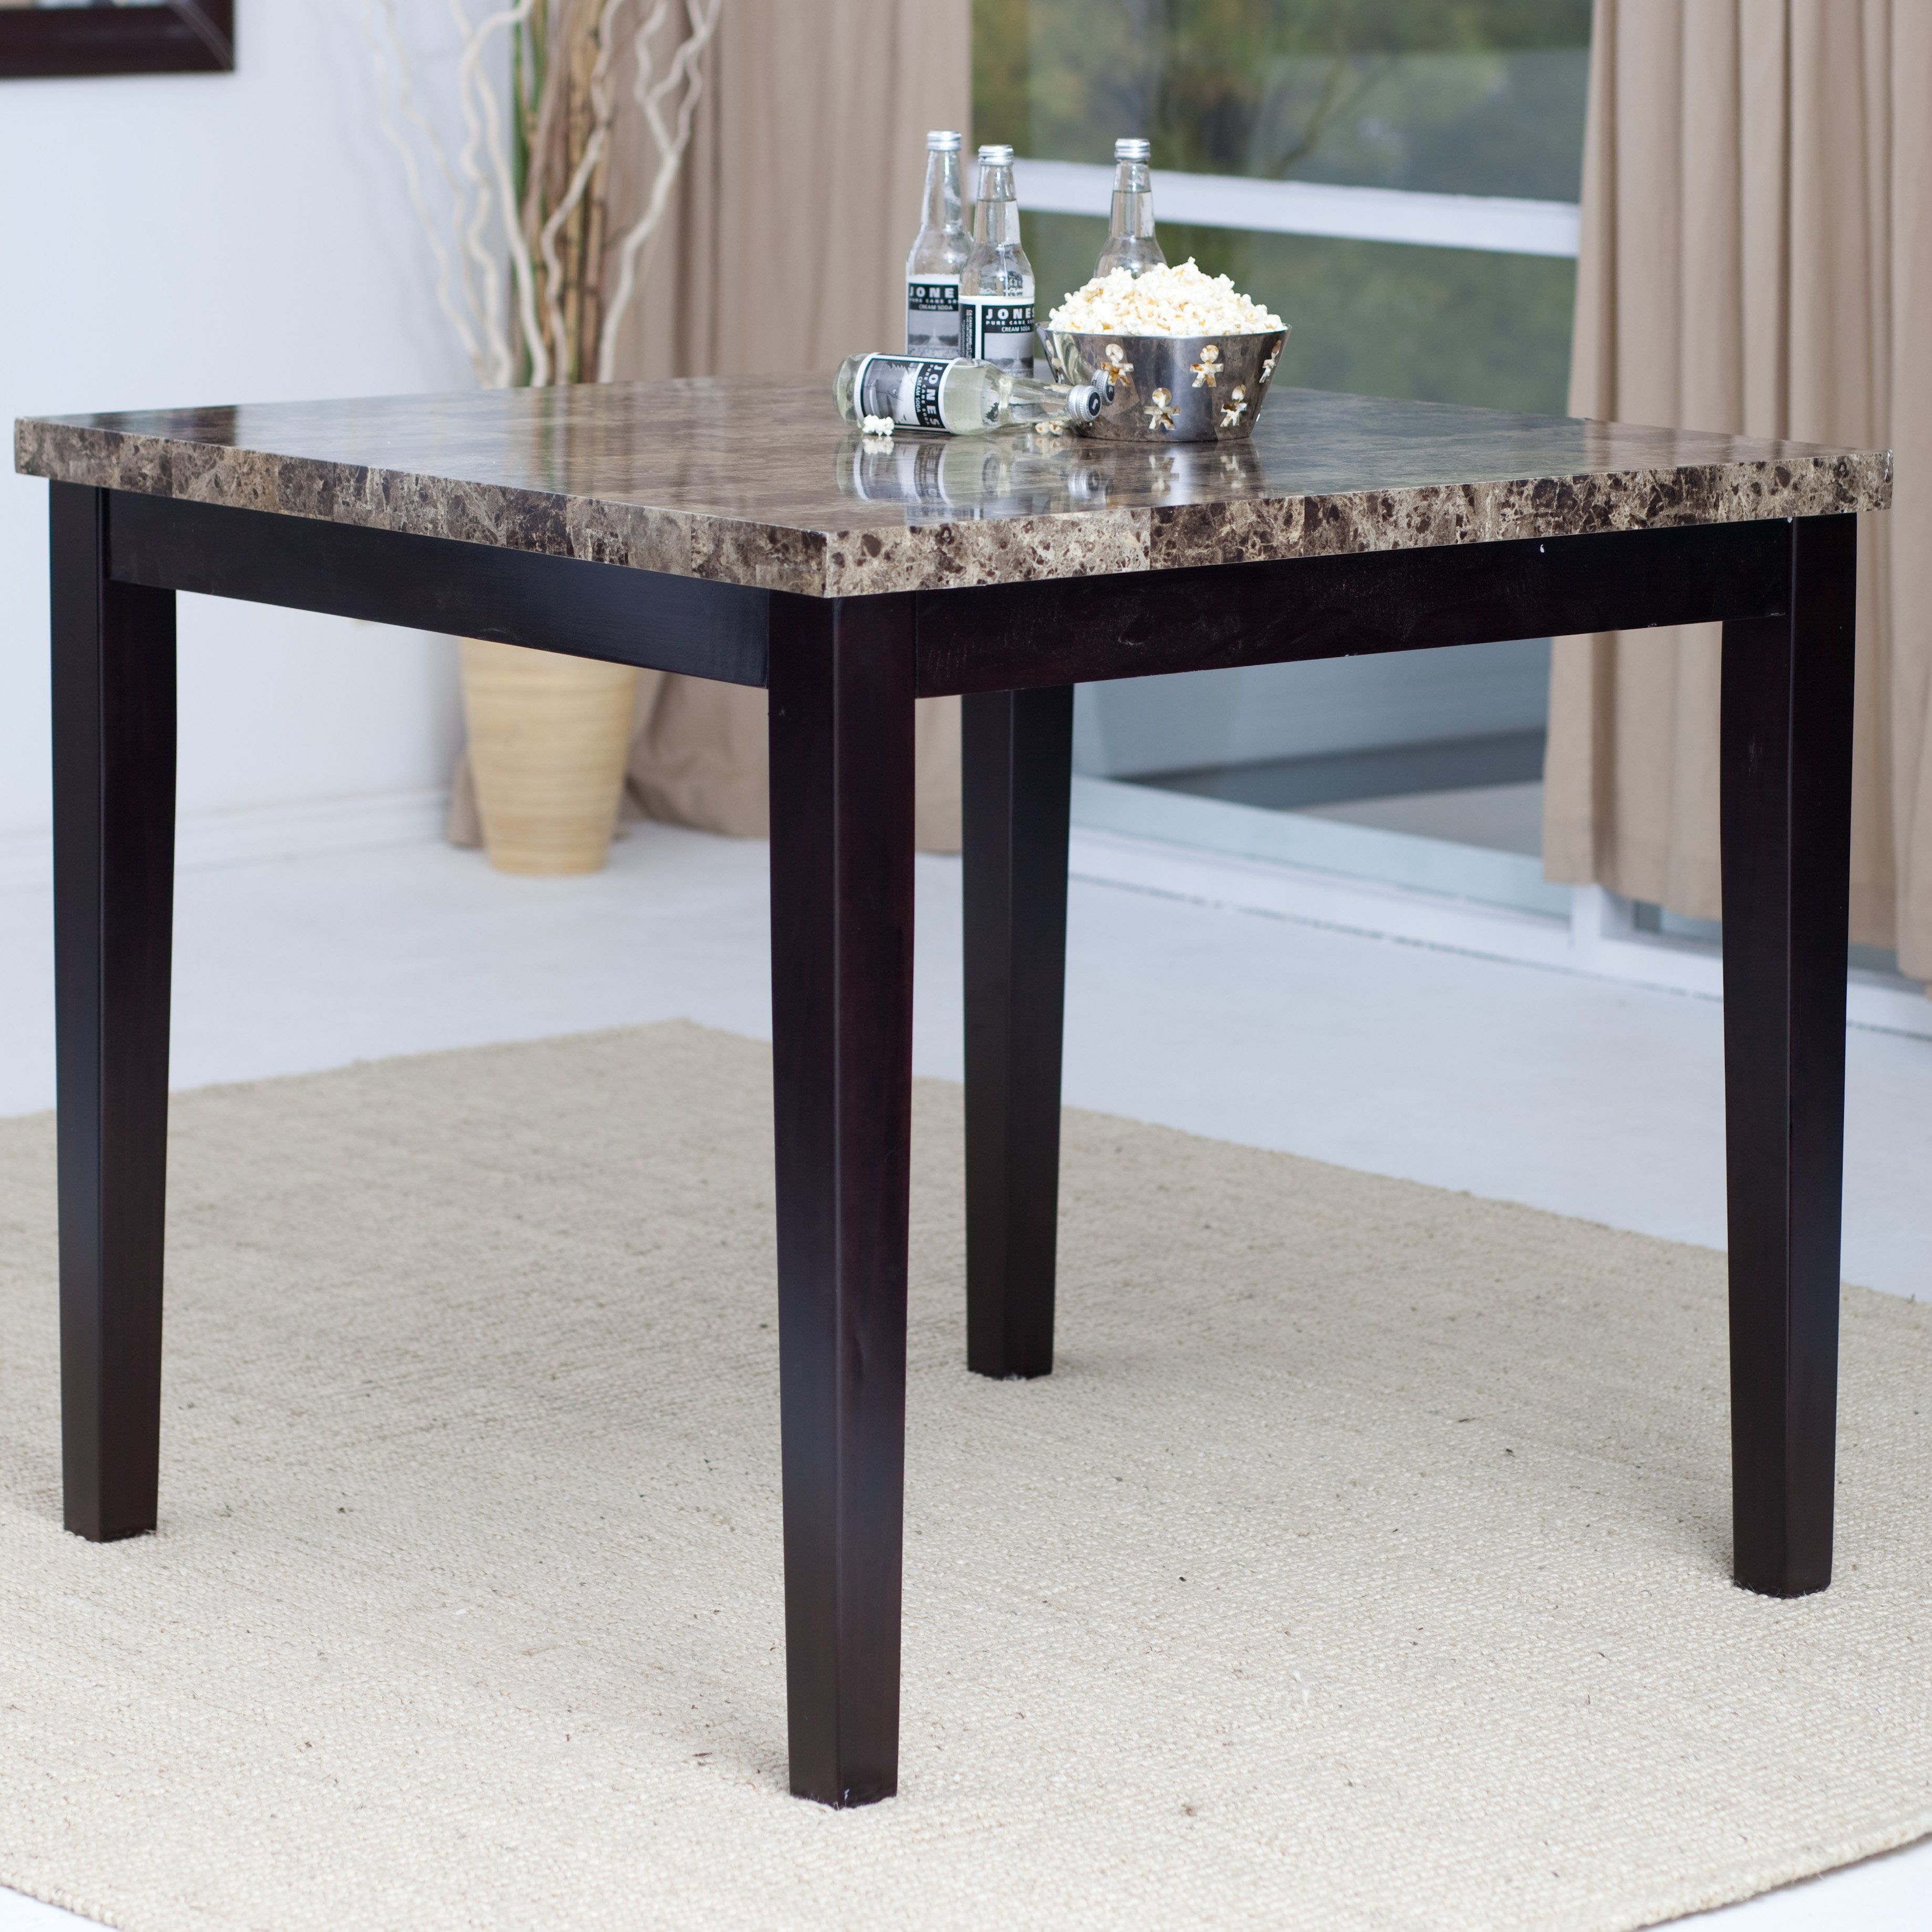 Bon Palazzo Counter Height Dining Table   With Marble Veneer Tabletop 42L X 42W  X 36H Inches